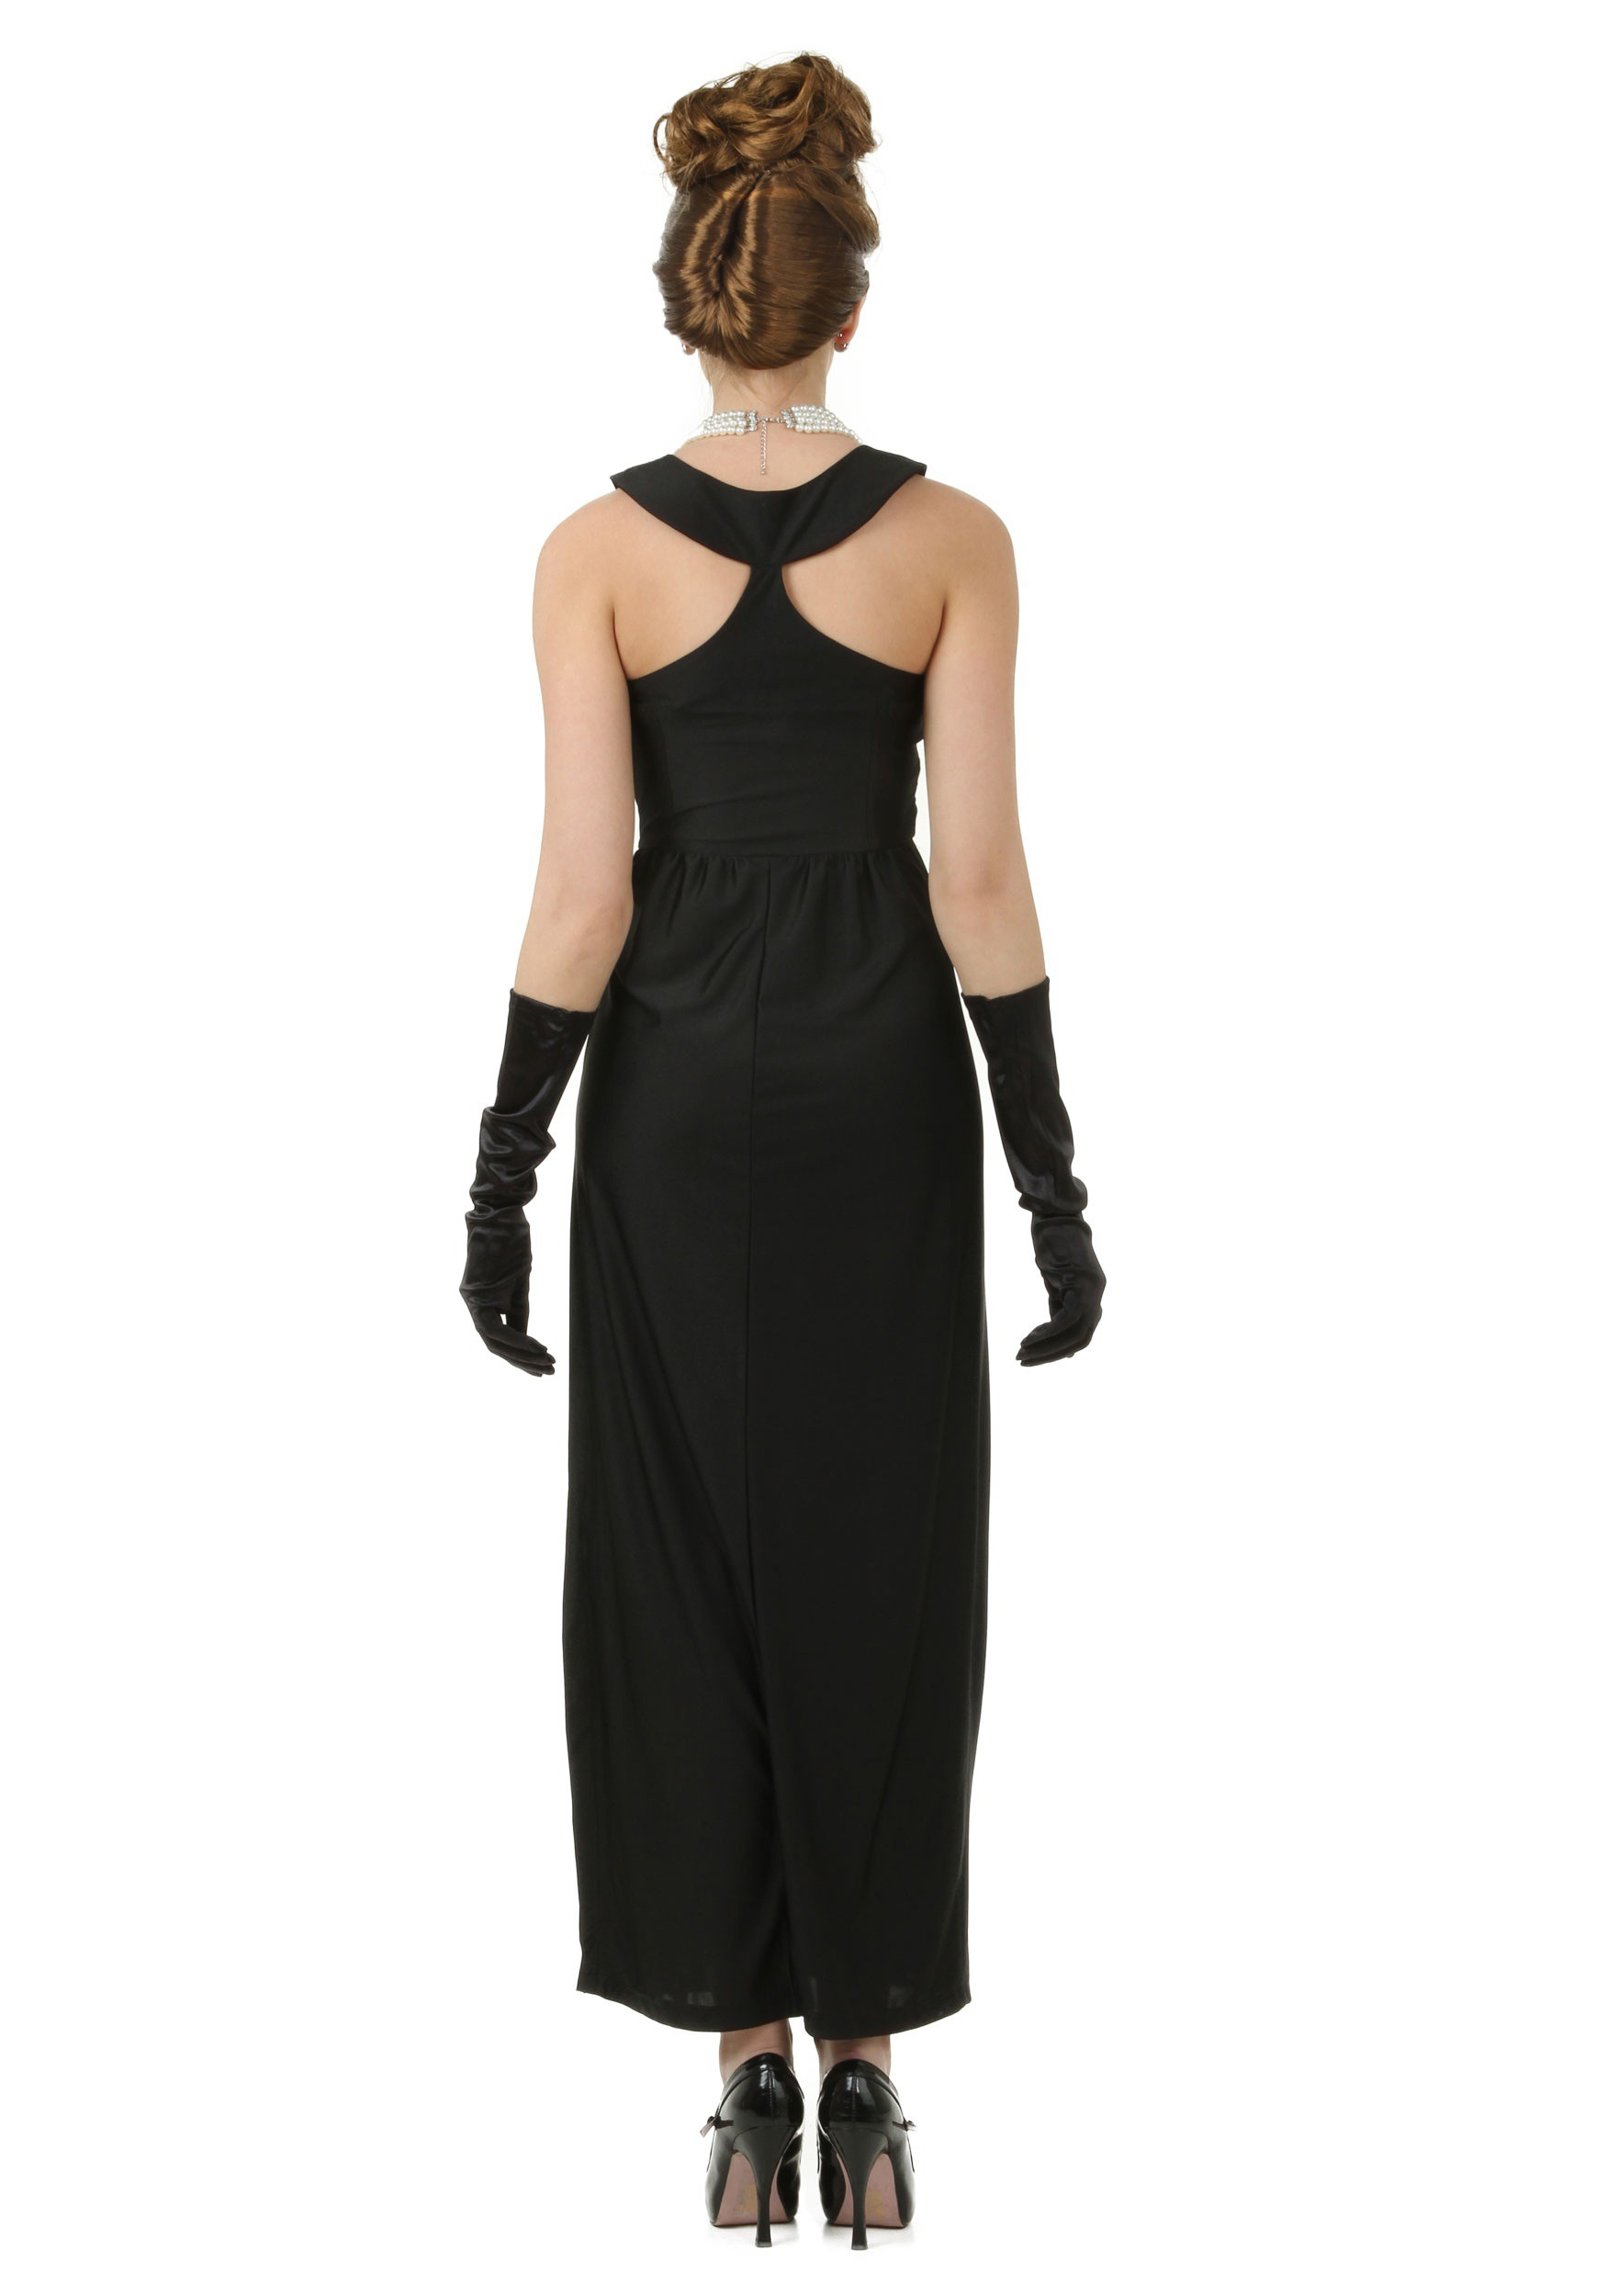 Oct 27, · 2. Holly Golightly – Breakfast at Tiffany's. Holly Golightly is a classic last minute Halloween costume because it's so easy. All you need is a black dress, scarf, sunglasses, and pearls. For this costume I was missing gloves, and a black scarf.